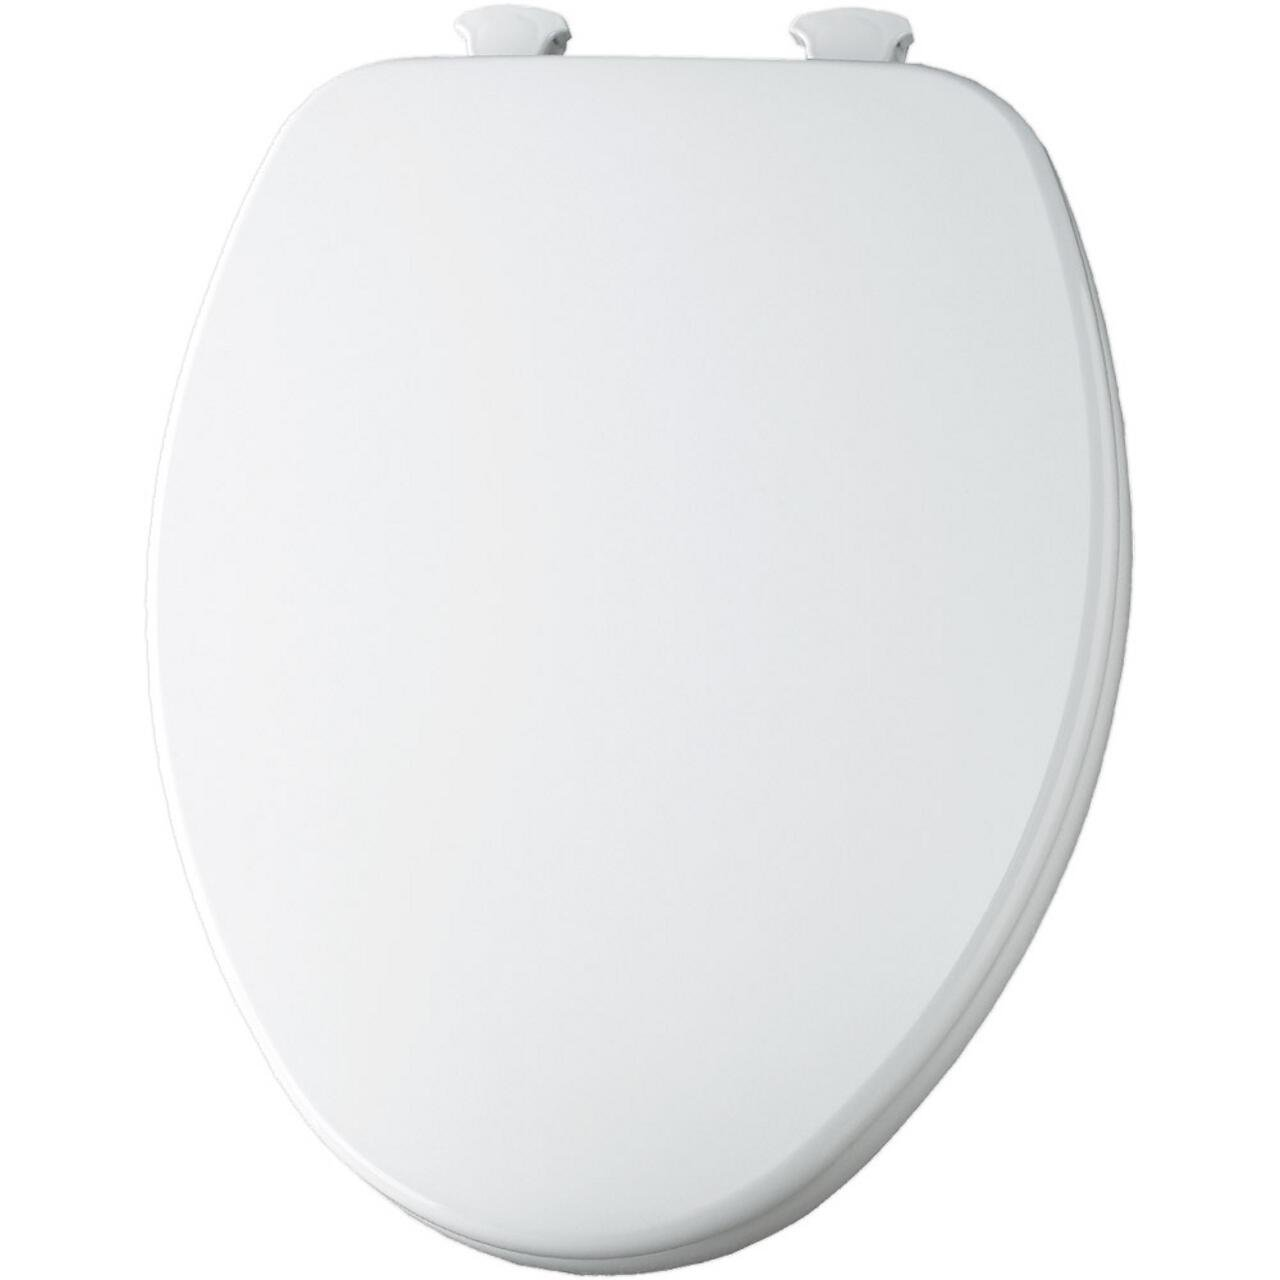 Church 585 White elongated closed front wood toilet seat with cover and Easy Clean Hinges by Church